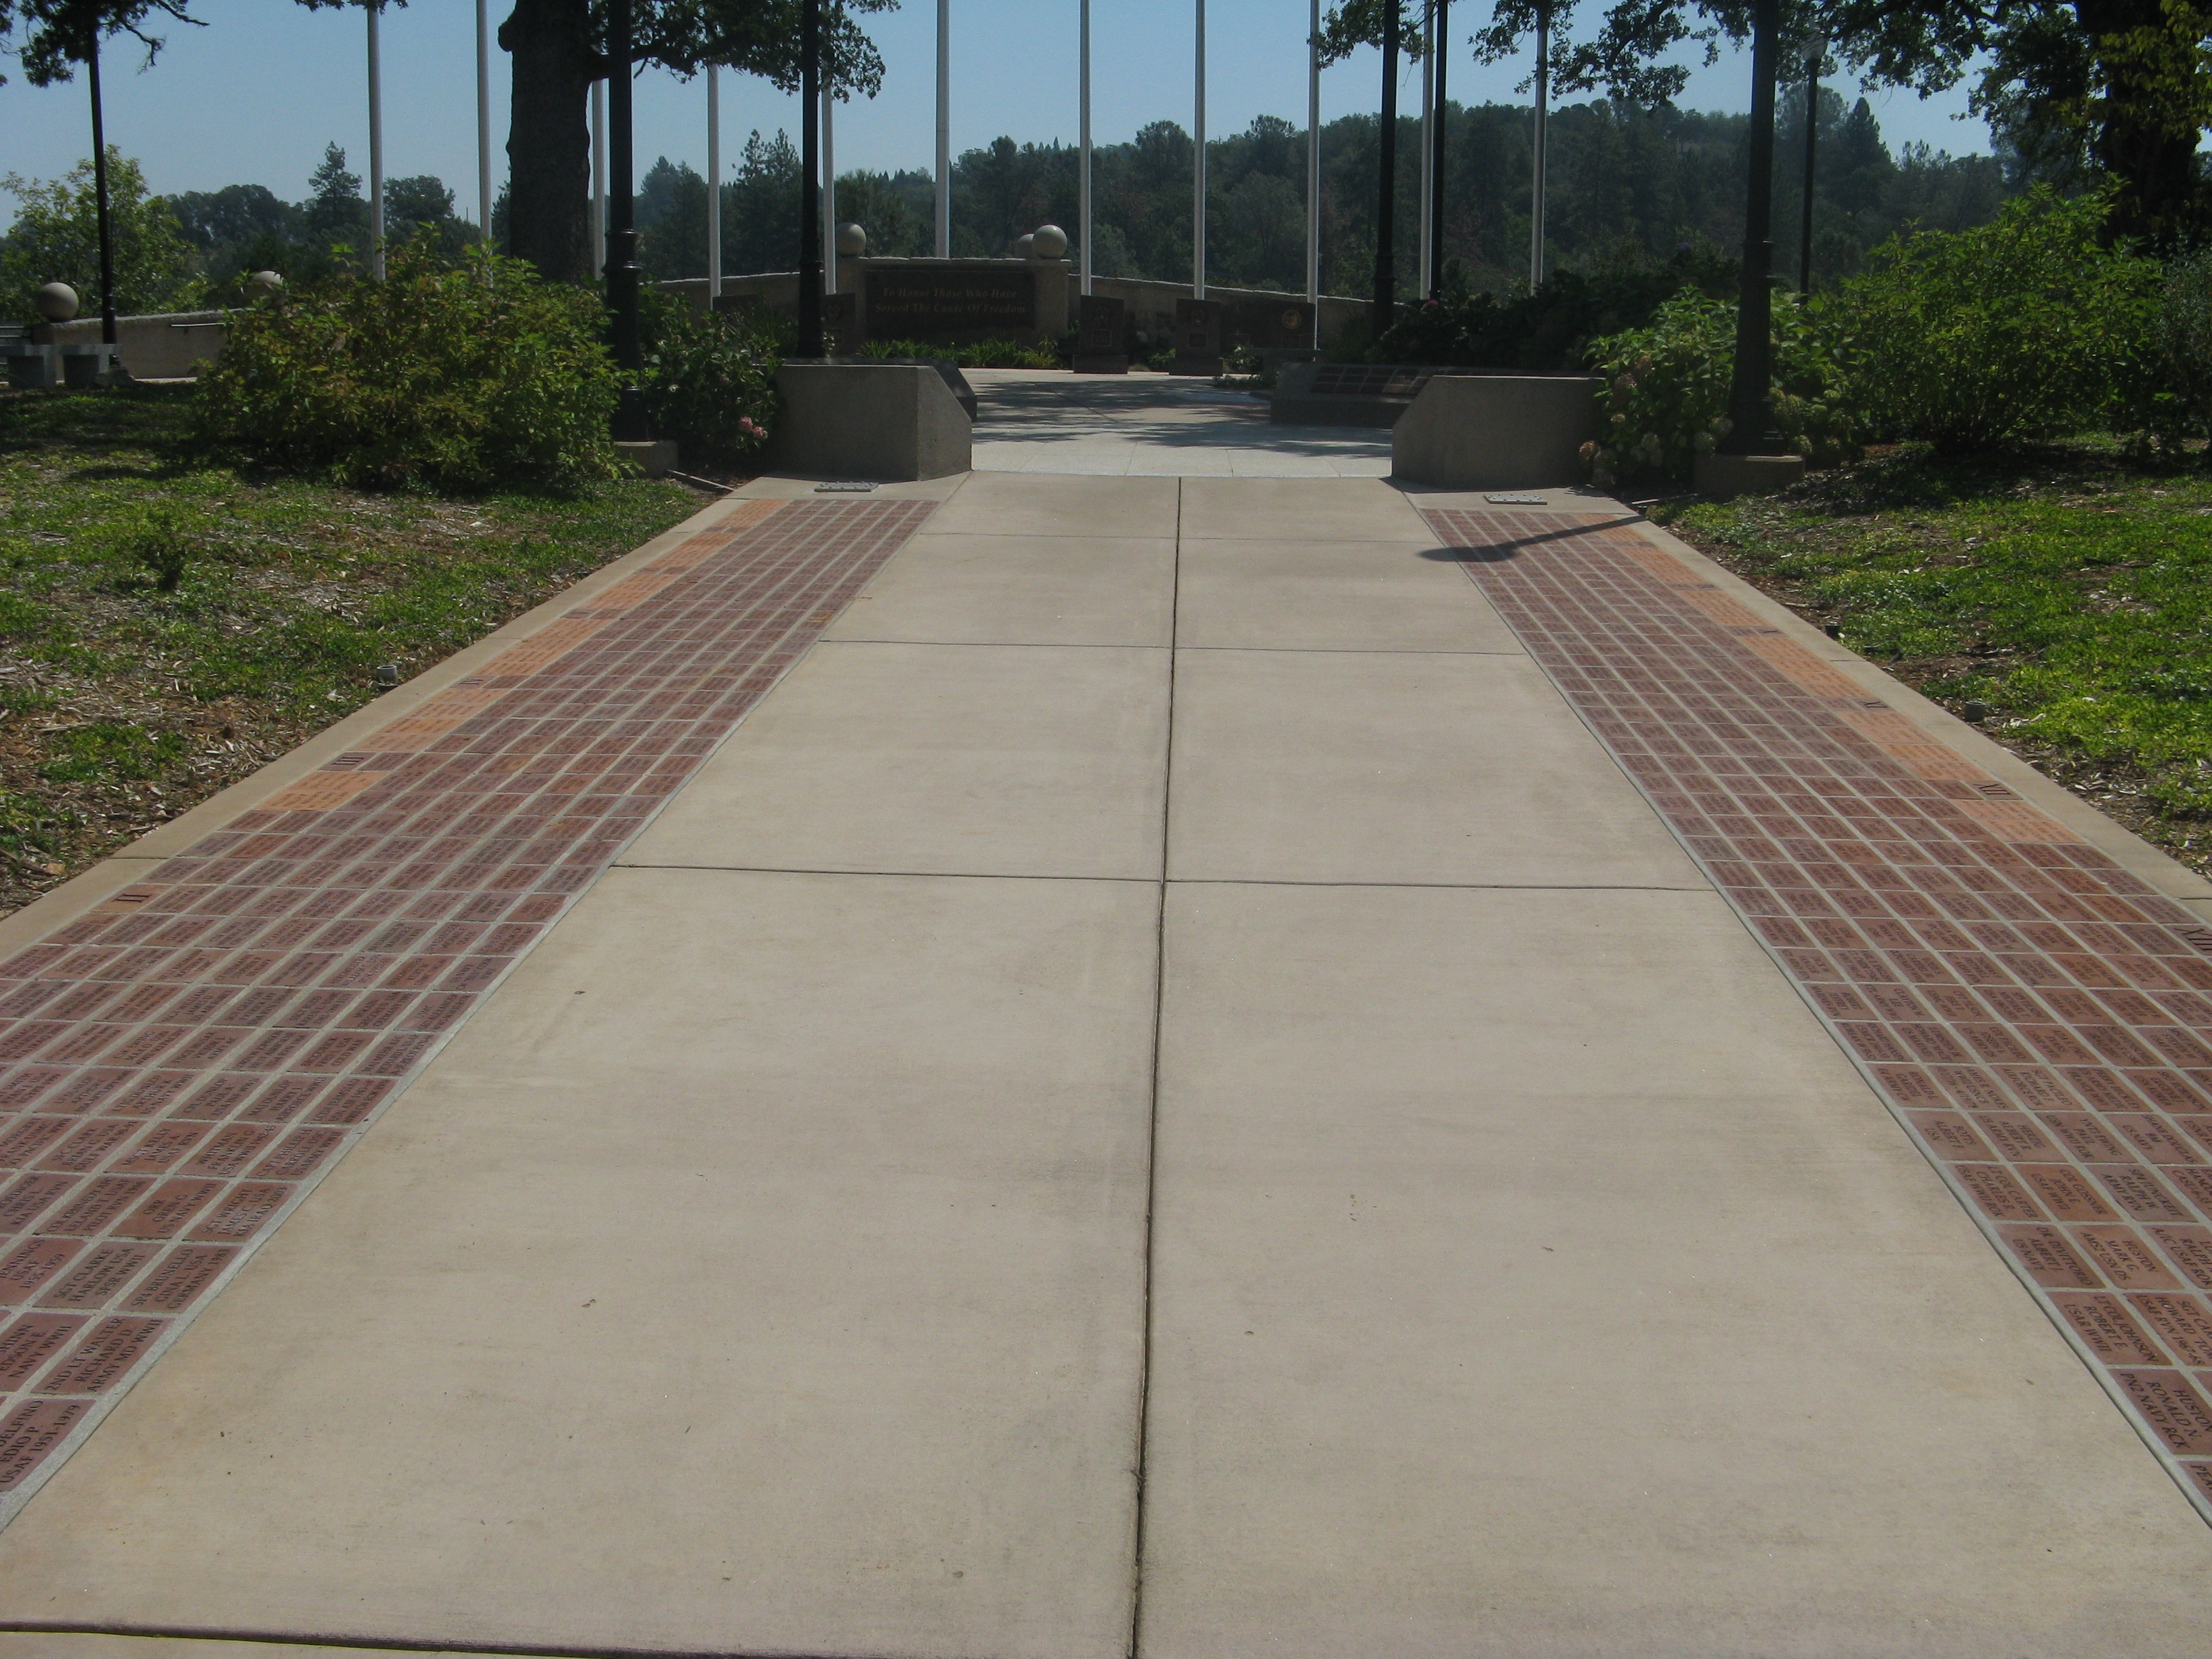 Veteran & Memorial Pavers Line Both Sides of Walkway to Monument